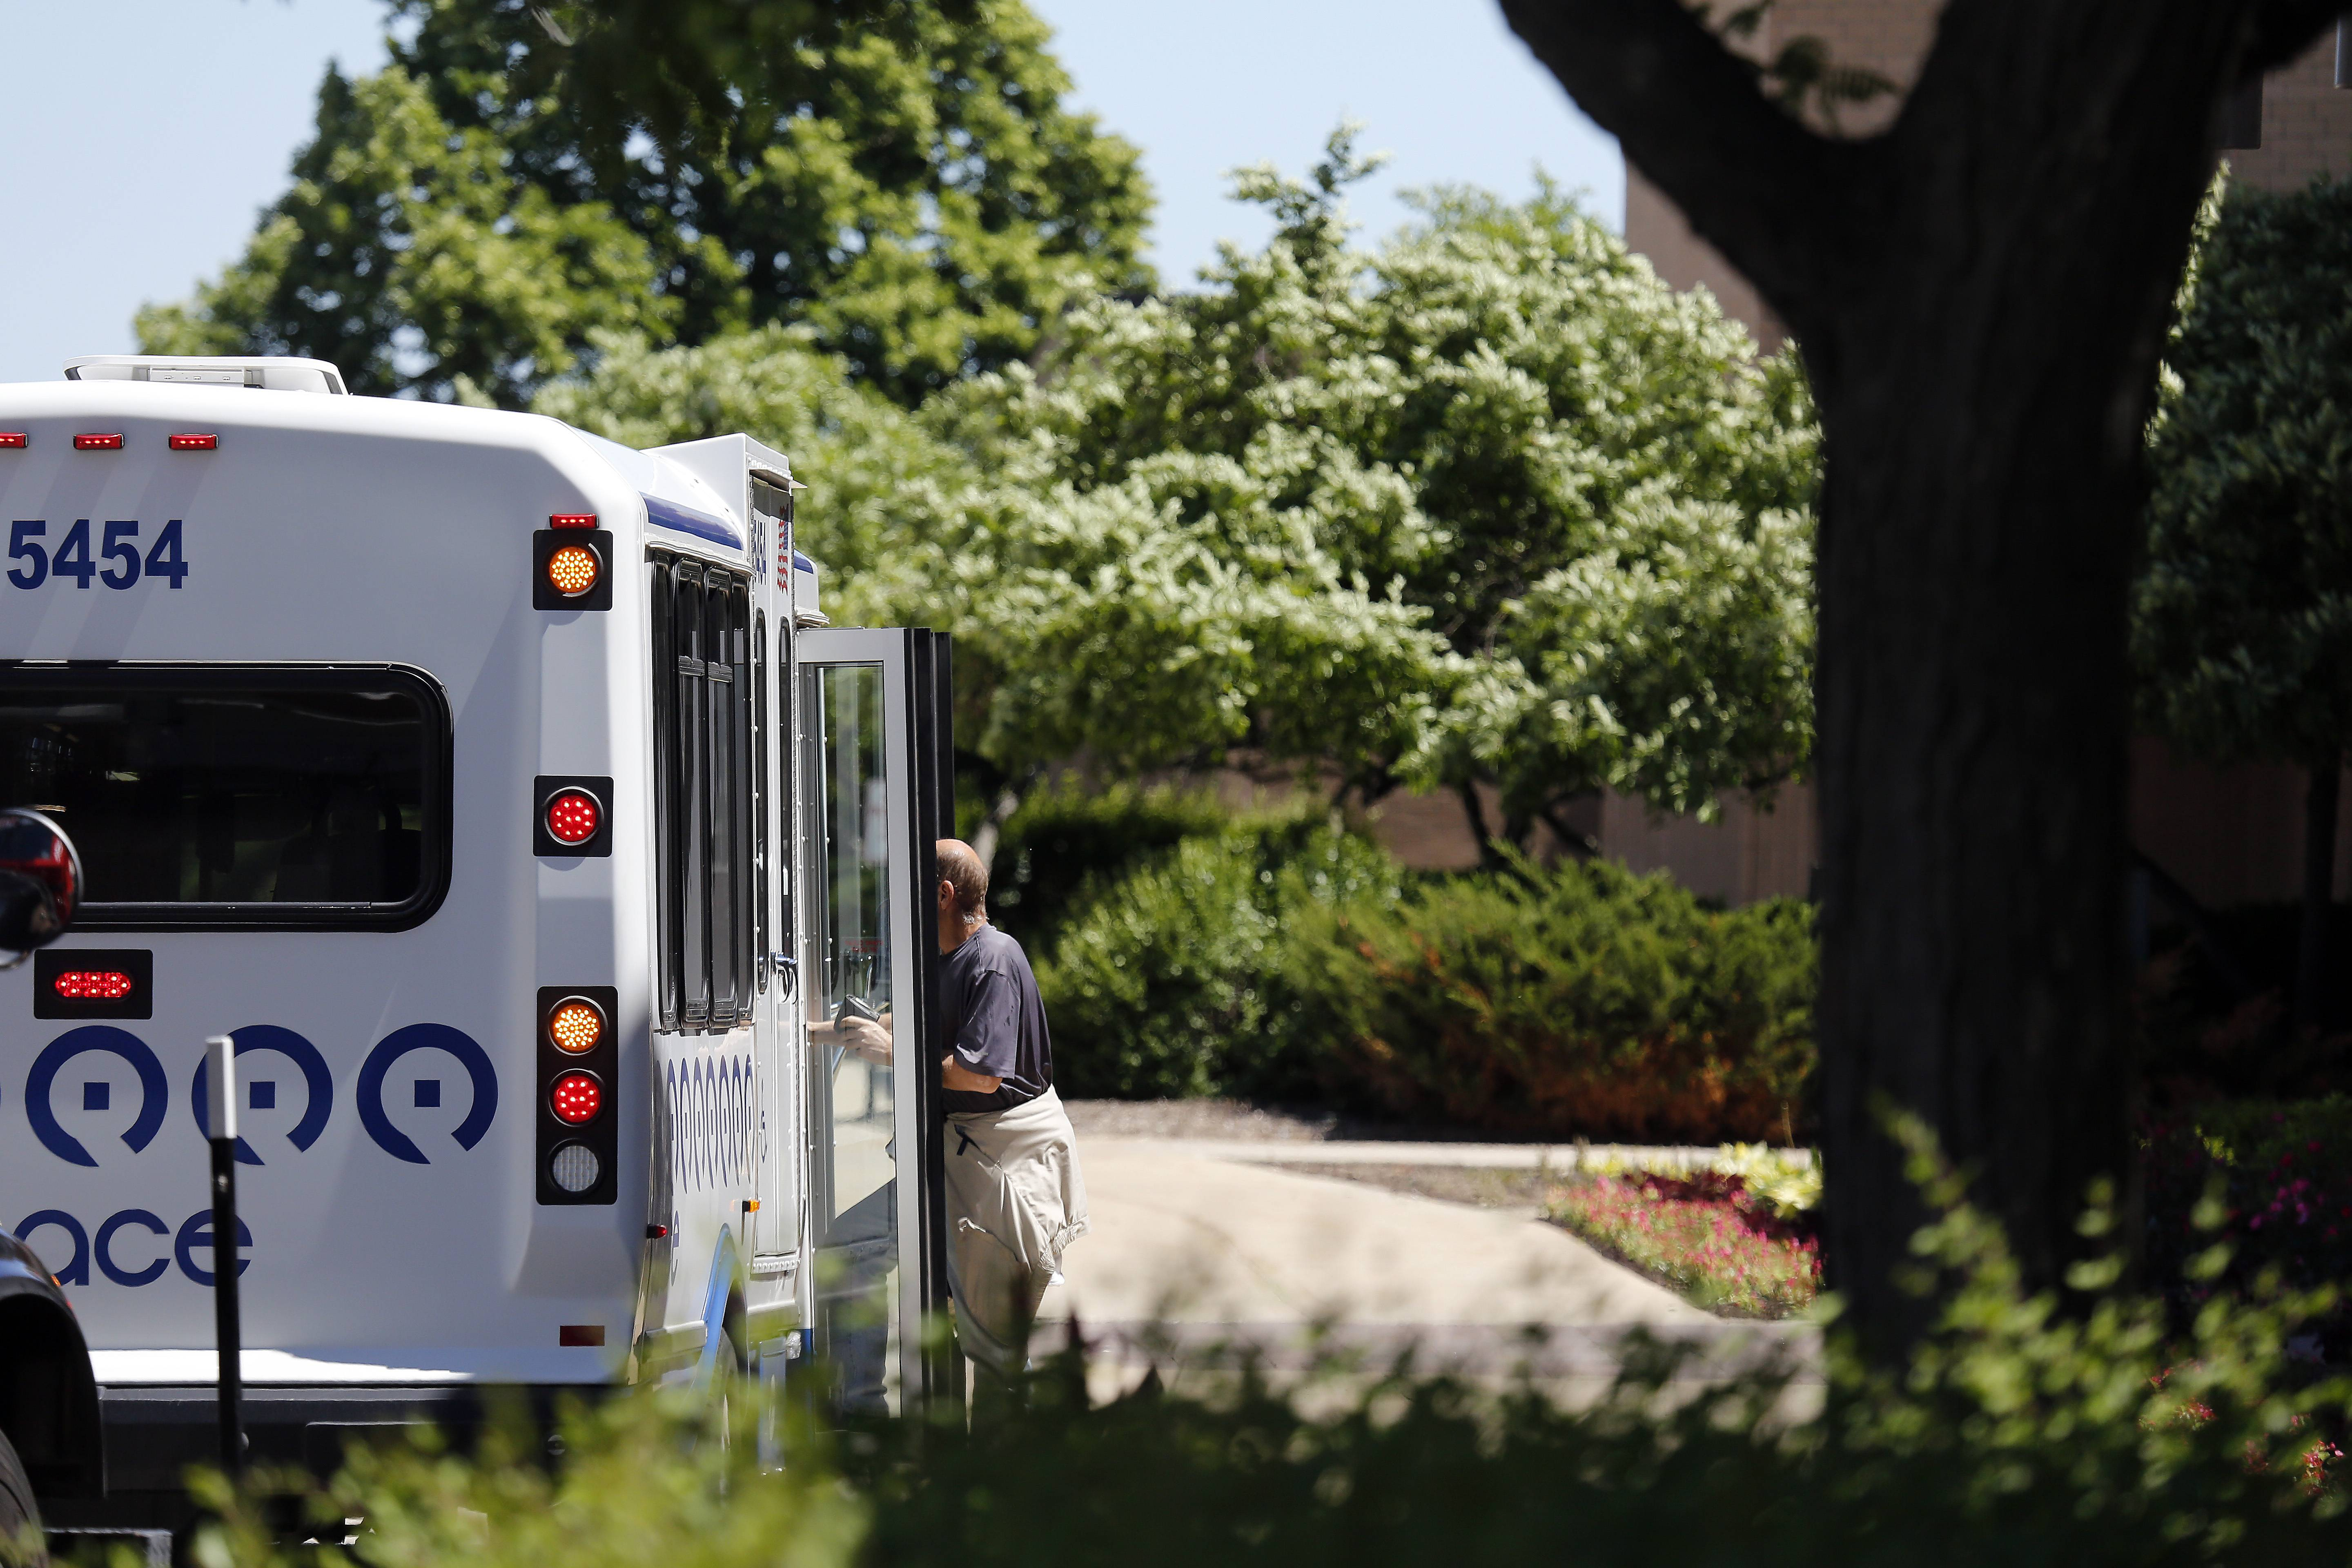 An unidentified man boards a Dial-a-Ride Pace bus Friday at Spring Hill Mall in West Dundee. Huntley village officials are considering joining McHenry County's MCRide bus service, which would be available to all residents. Huntley started a temporary taxi service for Sun City seniors last winter because Grafton Township cut off its bus service. The MCRide service would cost Huntley $48,500 yearly and would enable all residents to commute within Huntley and around the county. Village officials want neighboring taxing bodies, such as Grafton and Rutland townships and the Sun City Huntley Community Association to pitch in to cover the cost for the service.